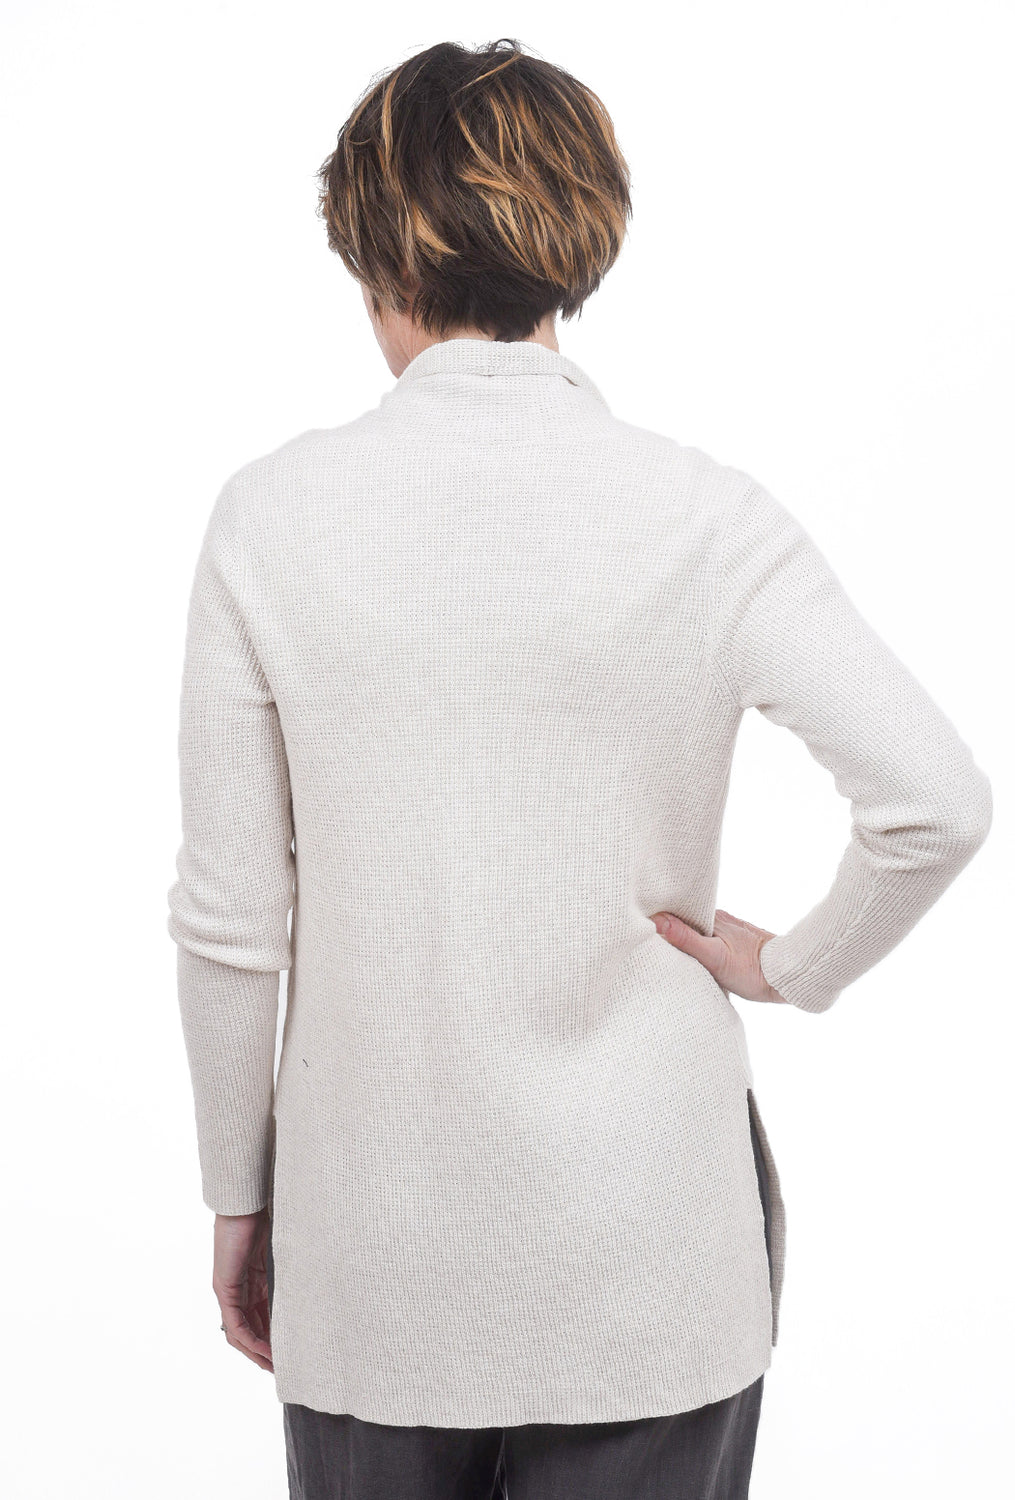 Margaret O'Leary Knits Thermal Duster, Oatmeal